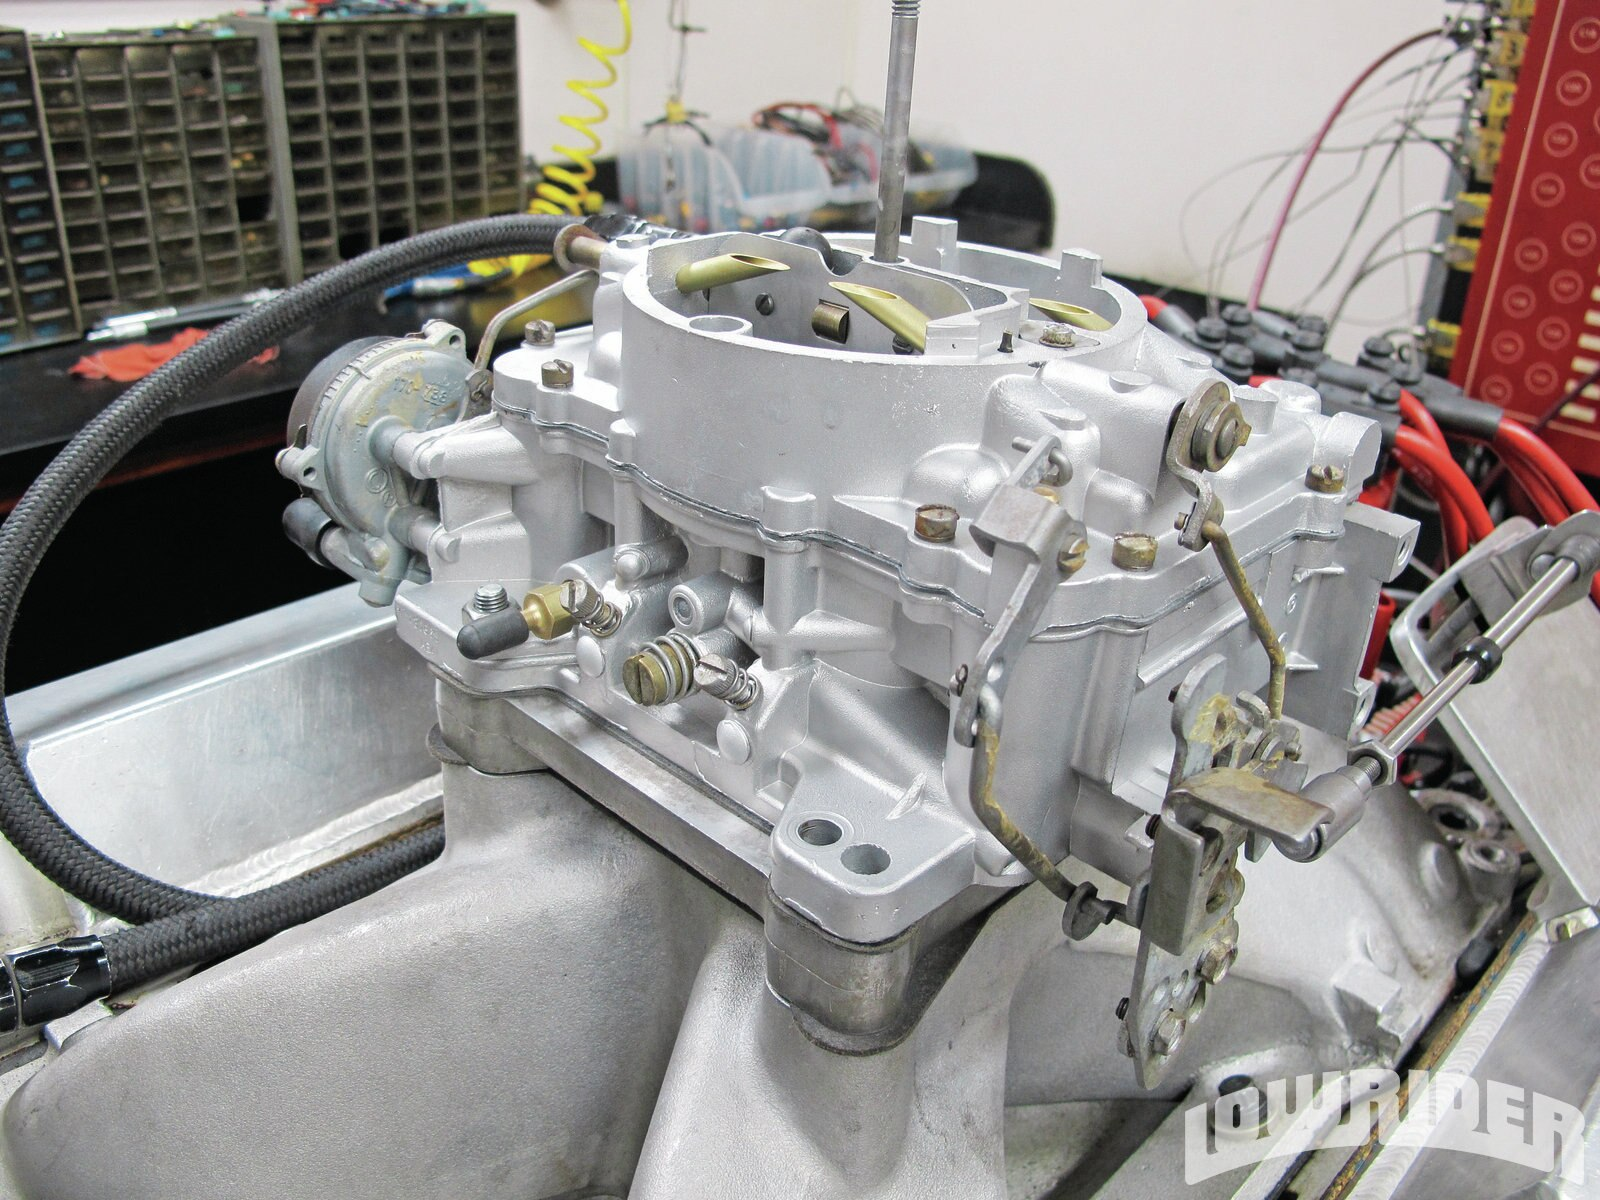 <strong>16</strong>. Once the carb was rebuilt, it was put on the dyno so it could be checked before delivery. This process is done with every carb that the Carb Shop works on.